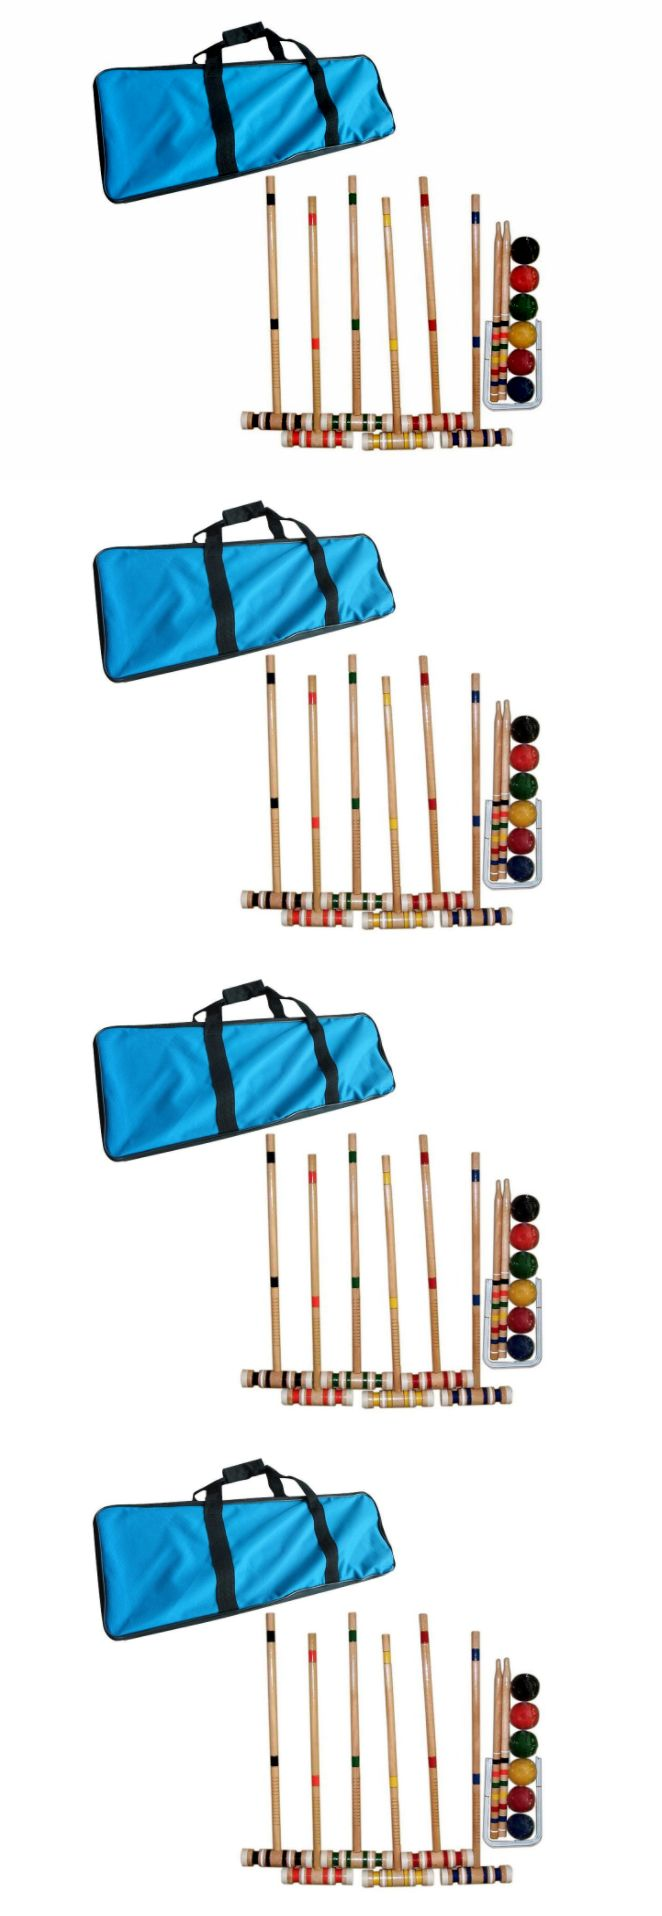 croquet 117210 croquet set for adults with carrying case croquet